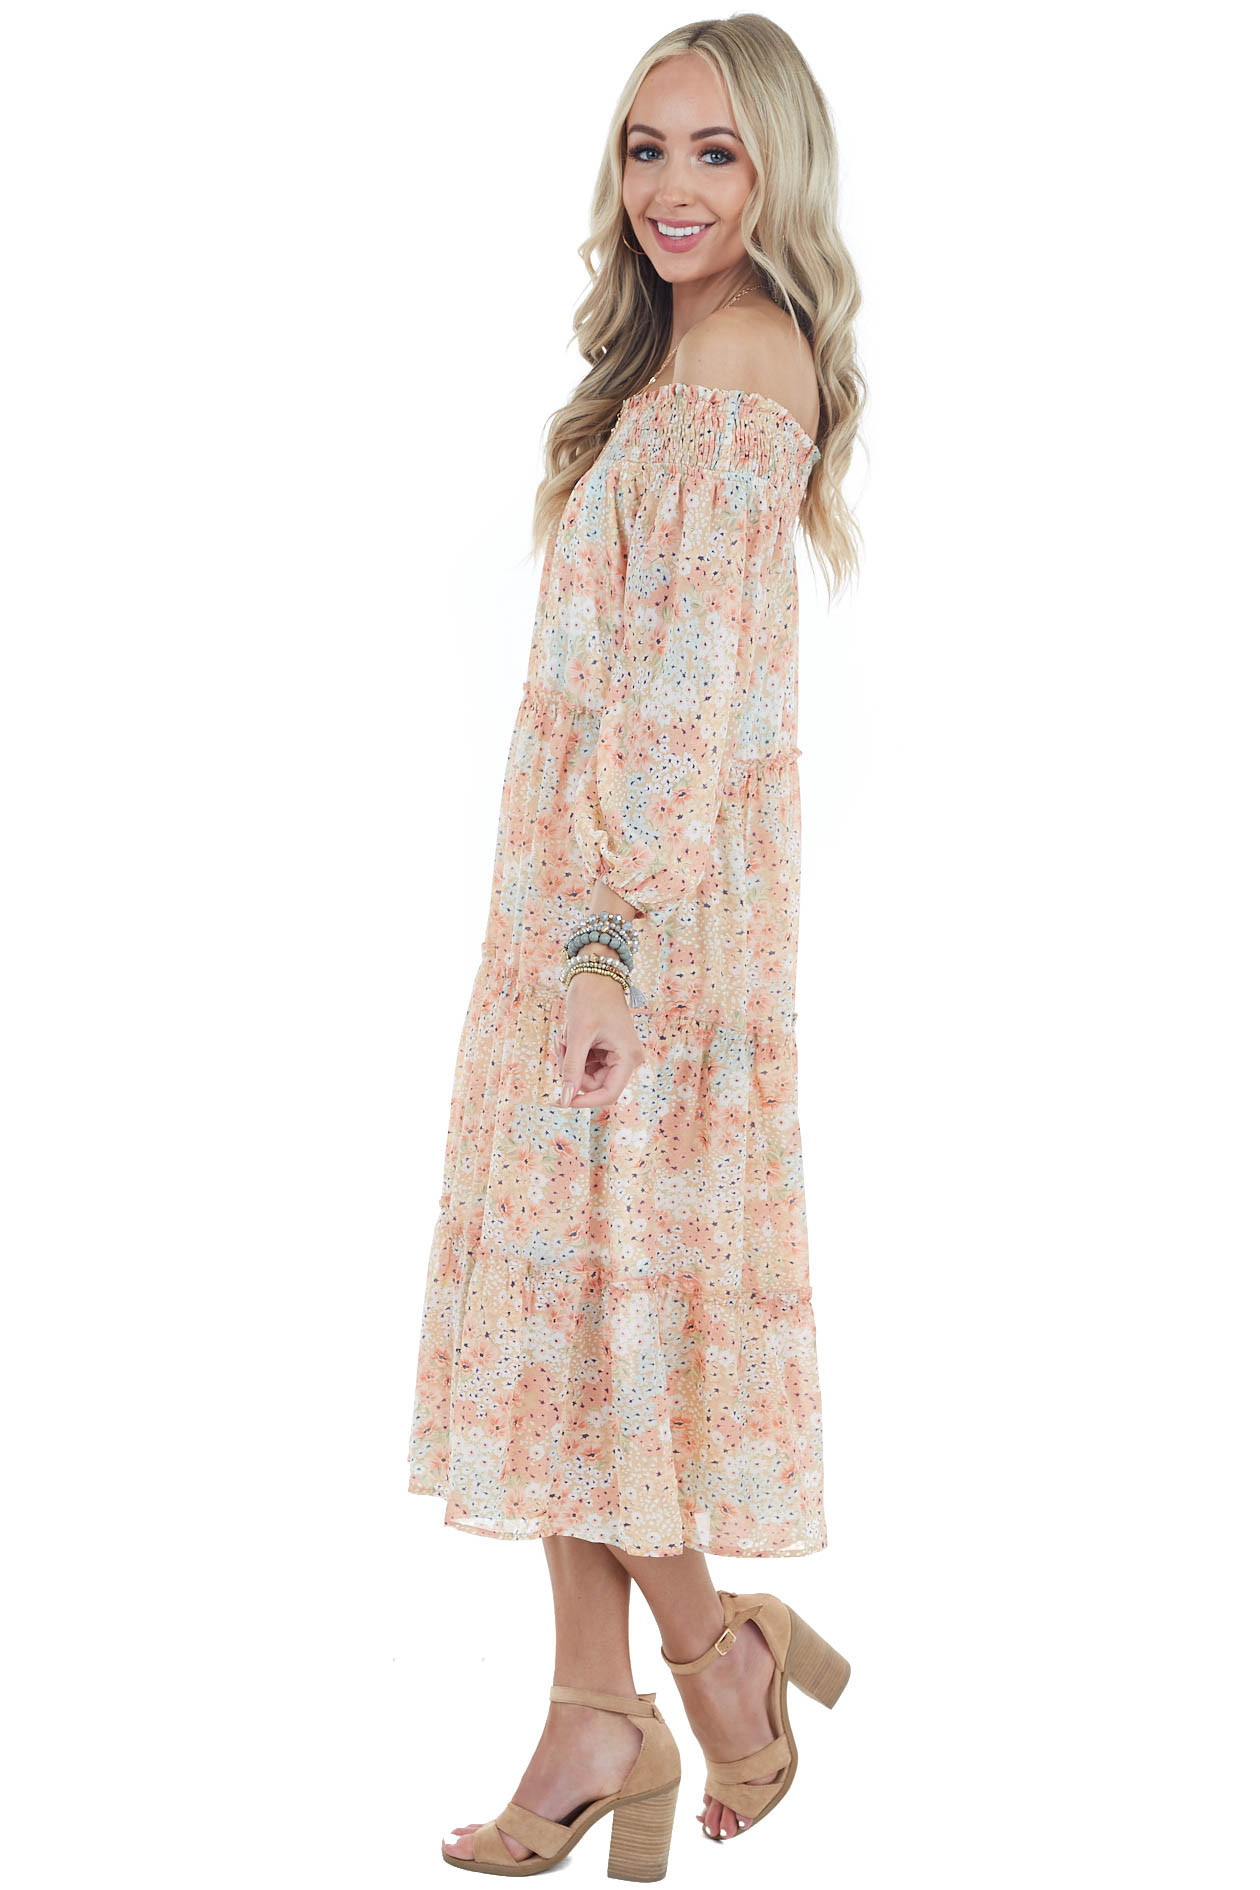 Apricot Floral Print Off Shoulder Smocked Tiered Midi Dress